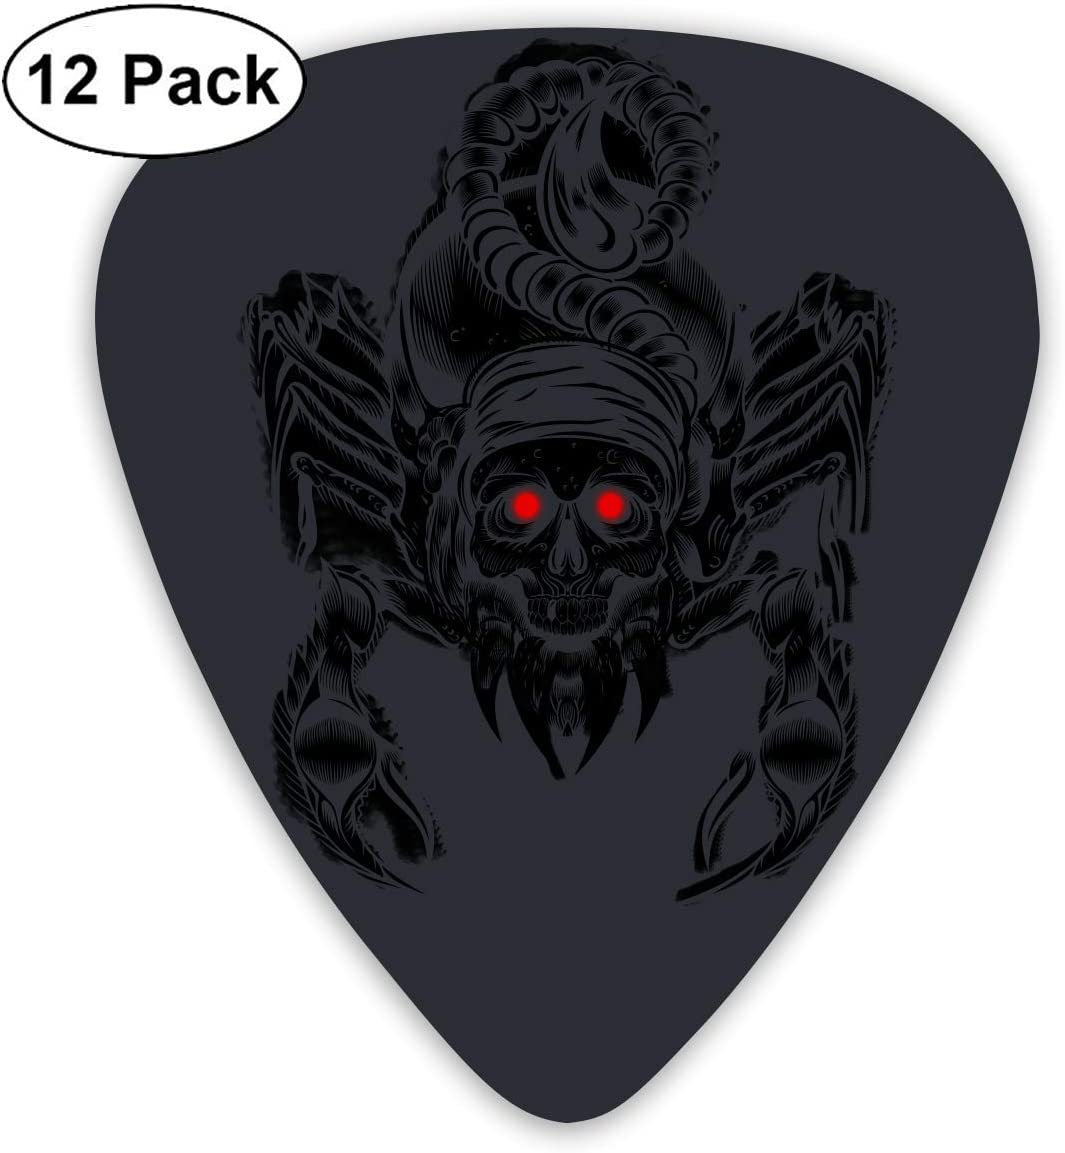 12 Pack Guitar Picks Scorpion Skull Think, Medium And Heavy,Unique Guitar Gift For Bass, Electric & Acoustic Guitars: Amazon.es: Instrumentos musicales